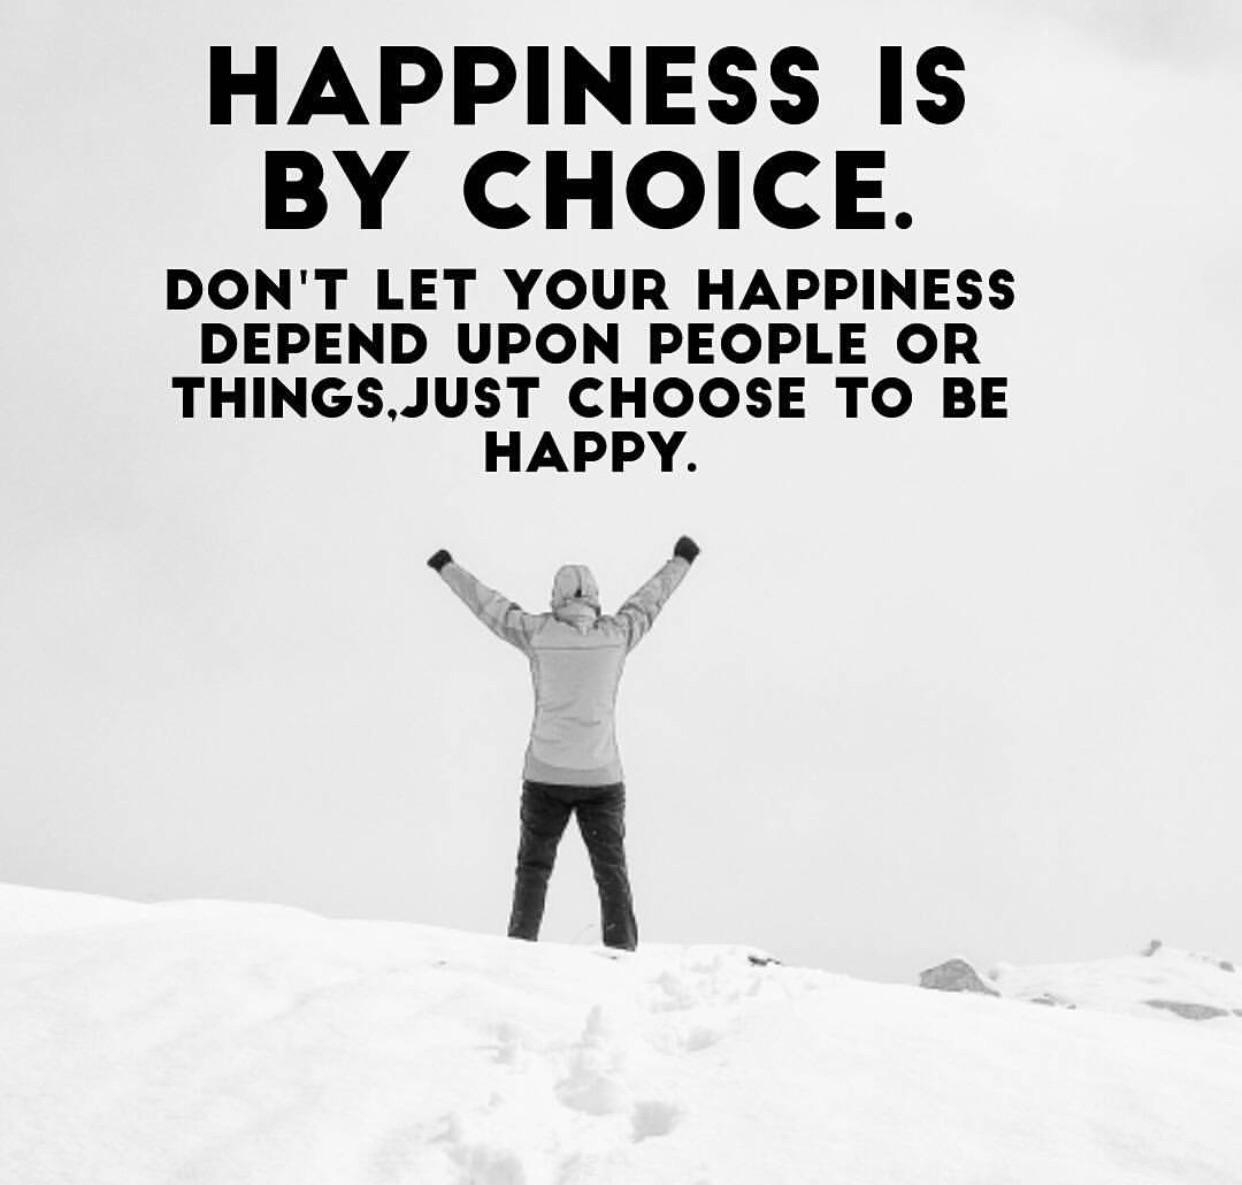 """Happiness is by choice.""- quotelegend[1242 x 1185] [OC]"